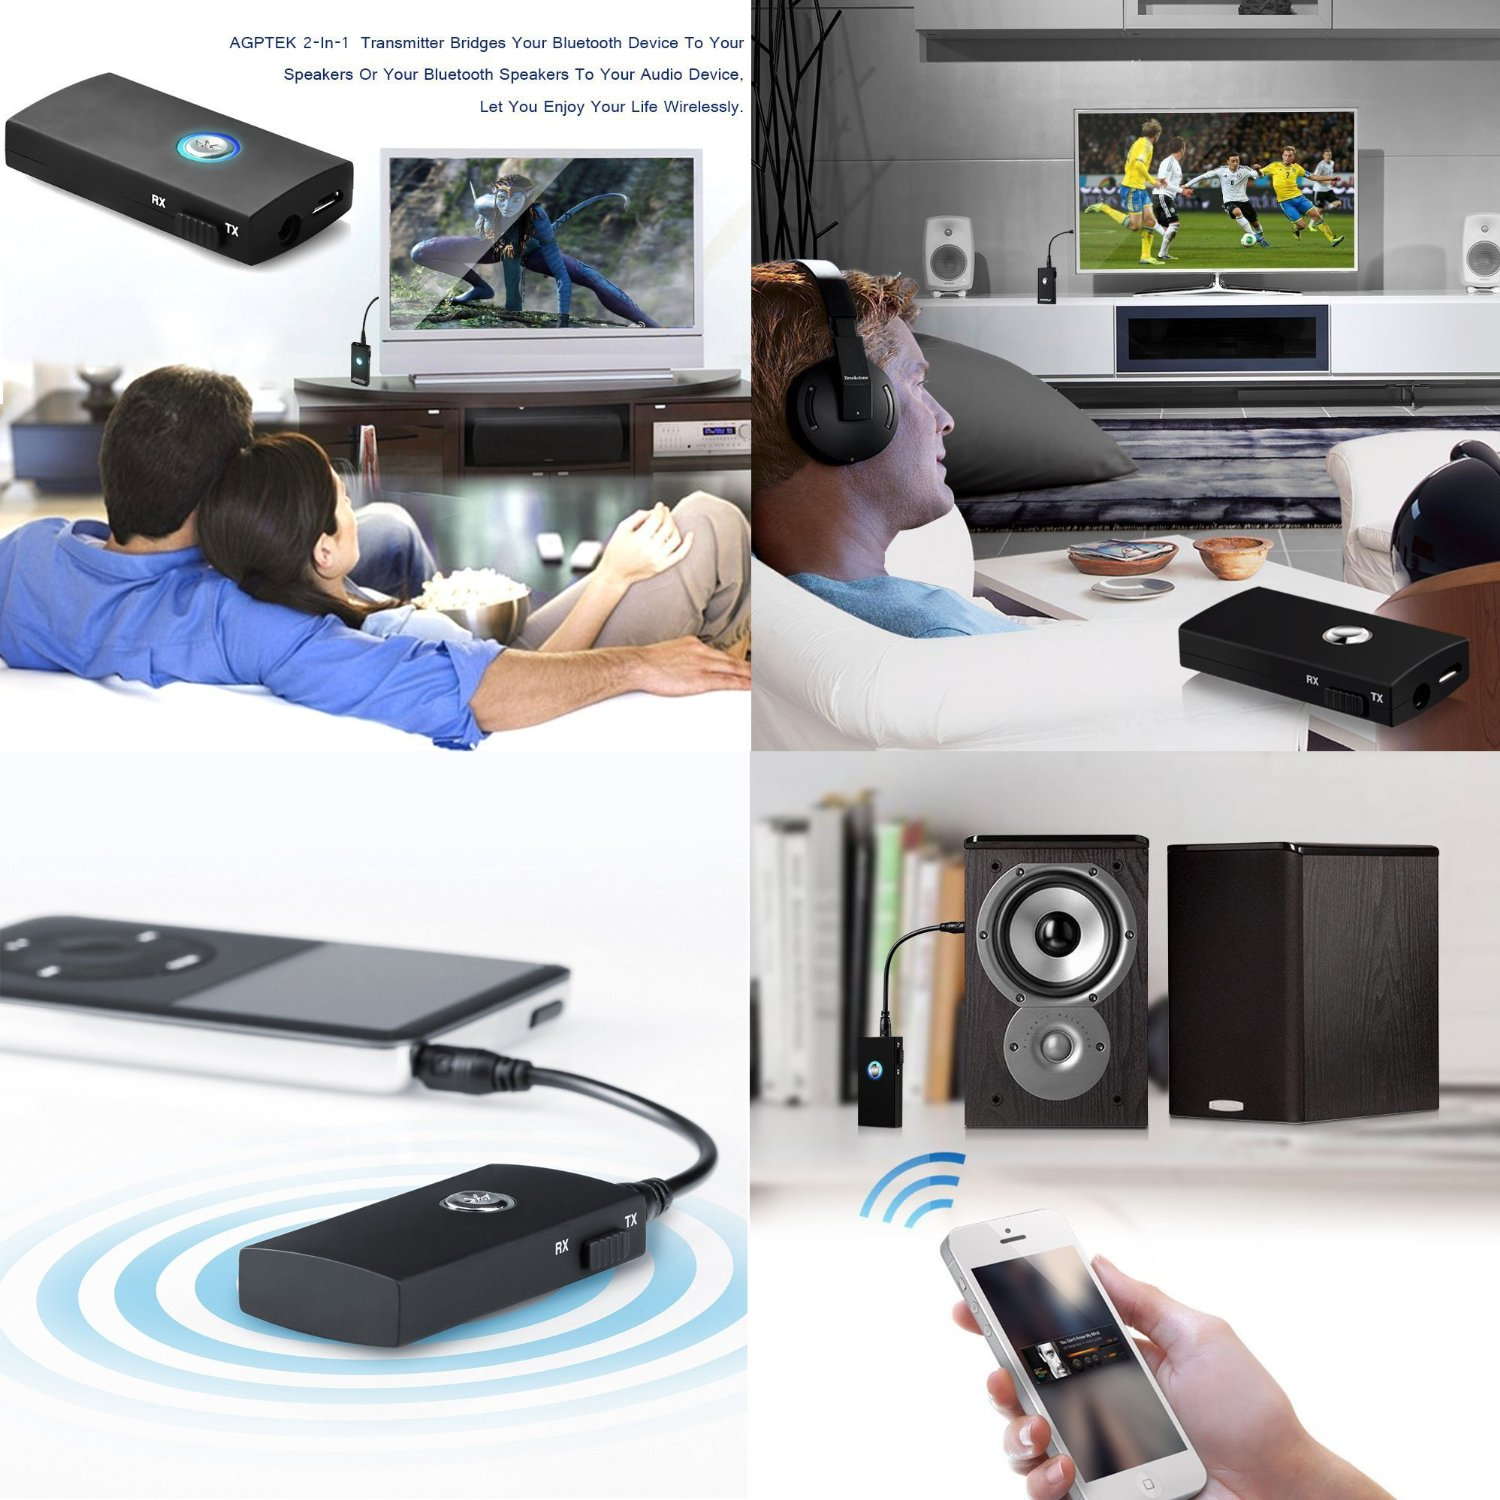 mpow streambot 2 in 1 bluetooth transmitter and receiver manual